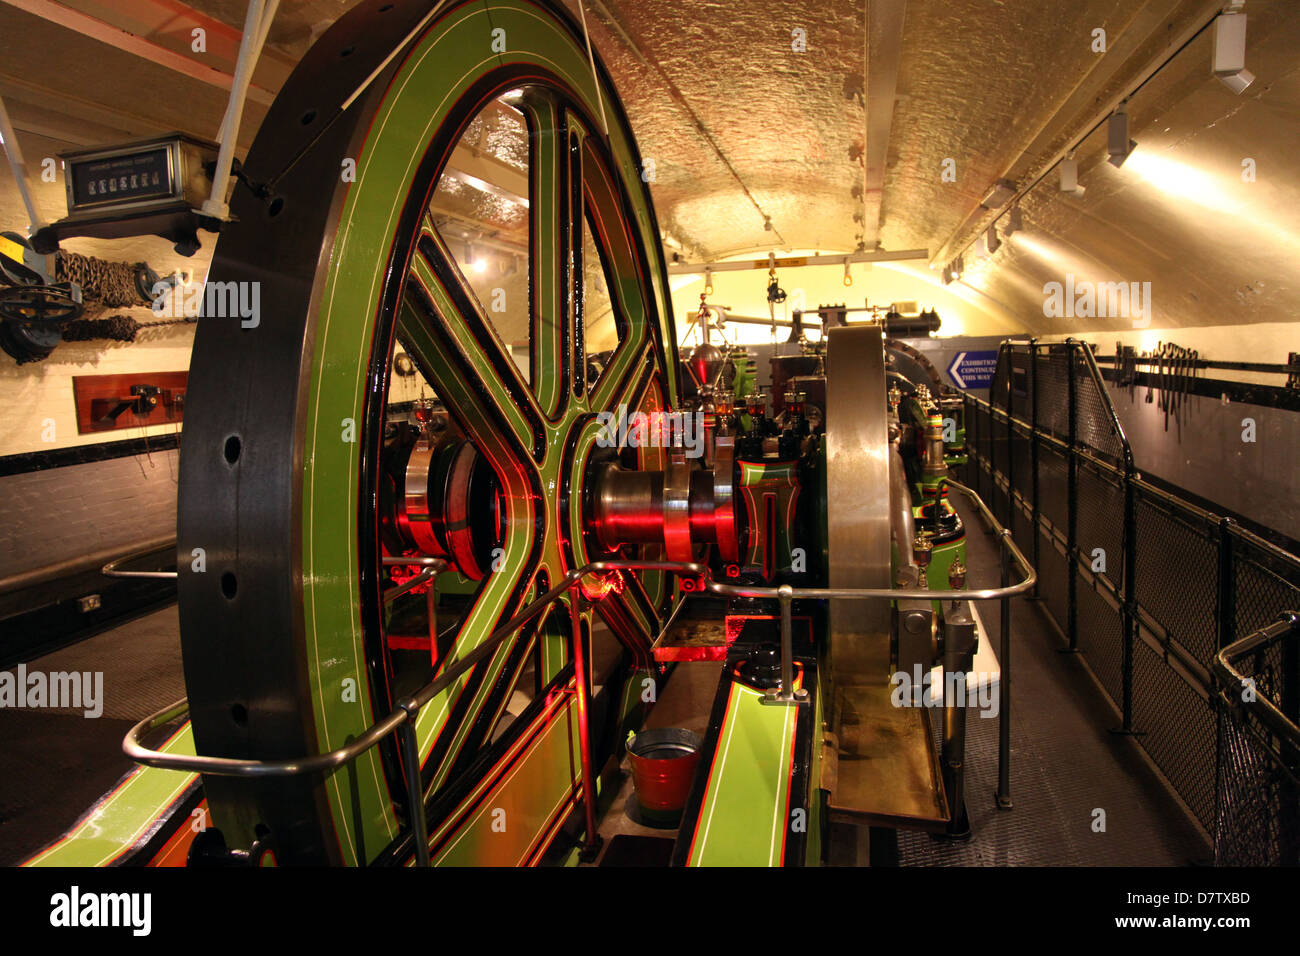 Engines for lifting gear, Tower Bridge, London, England, United Kingdom Stock Photo